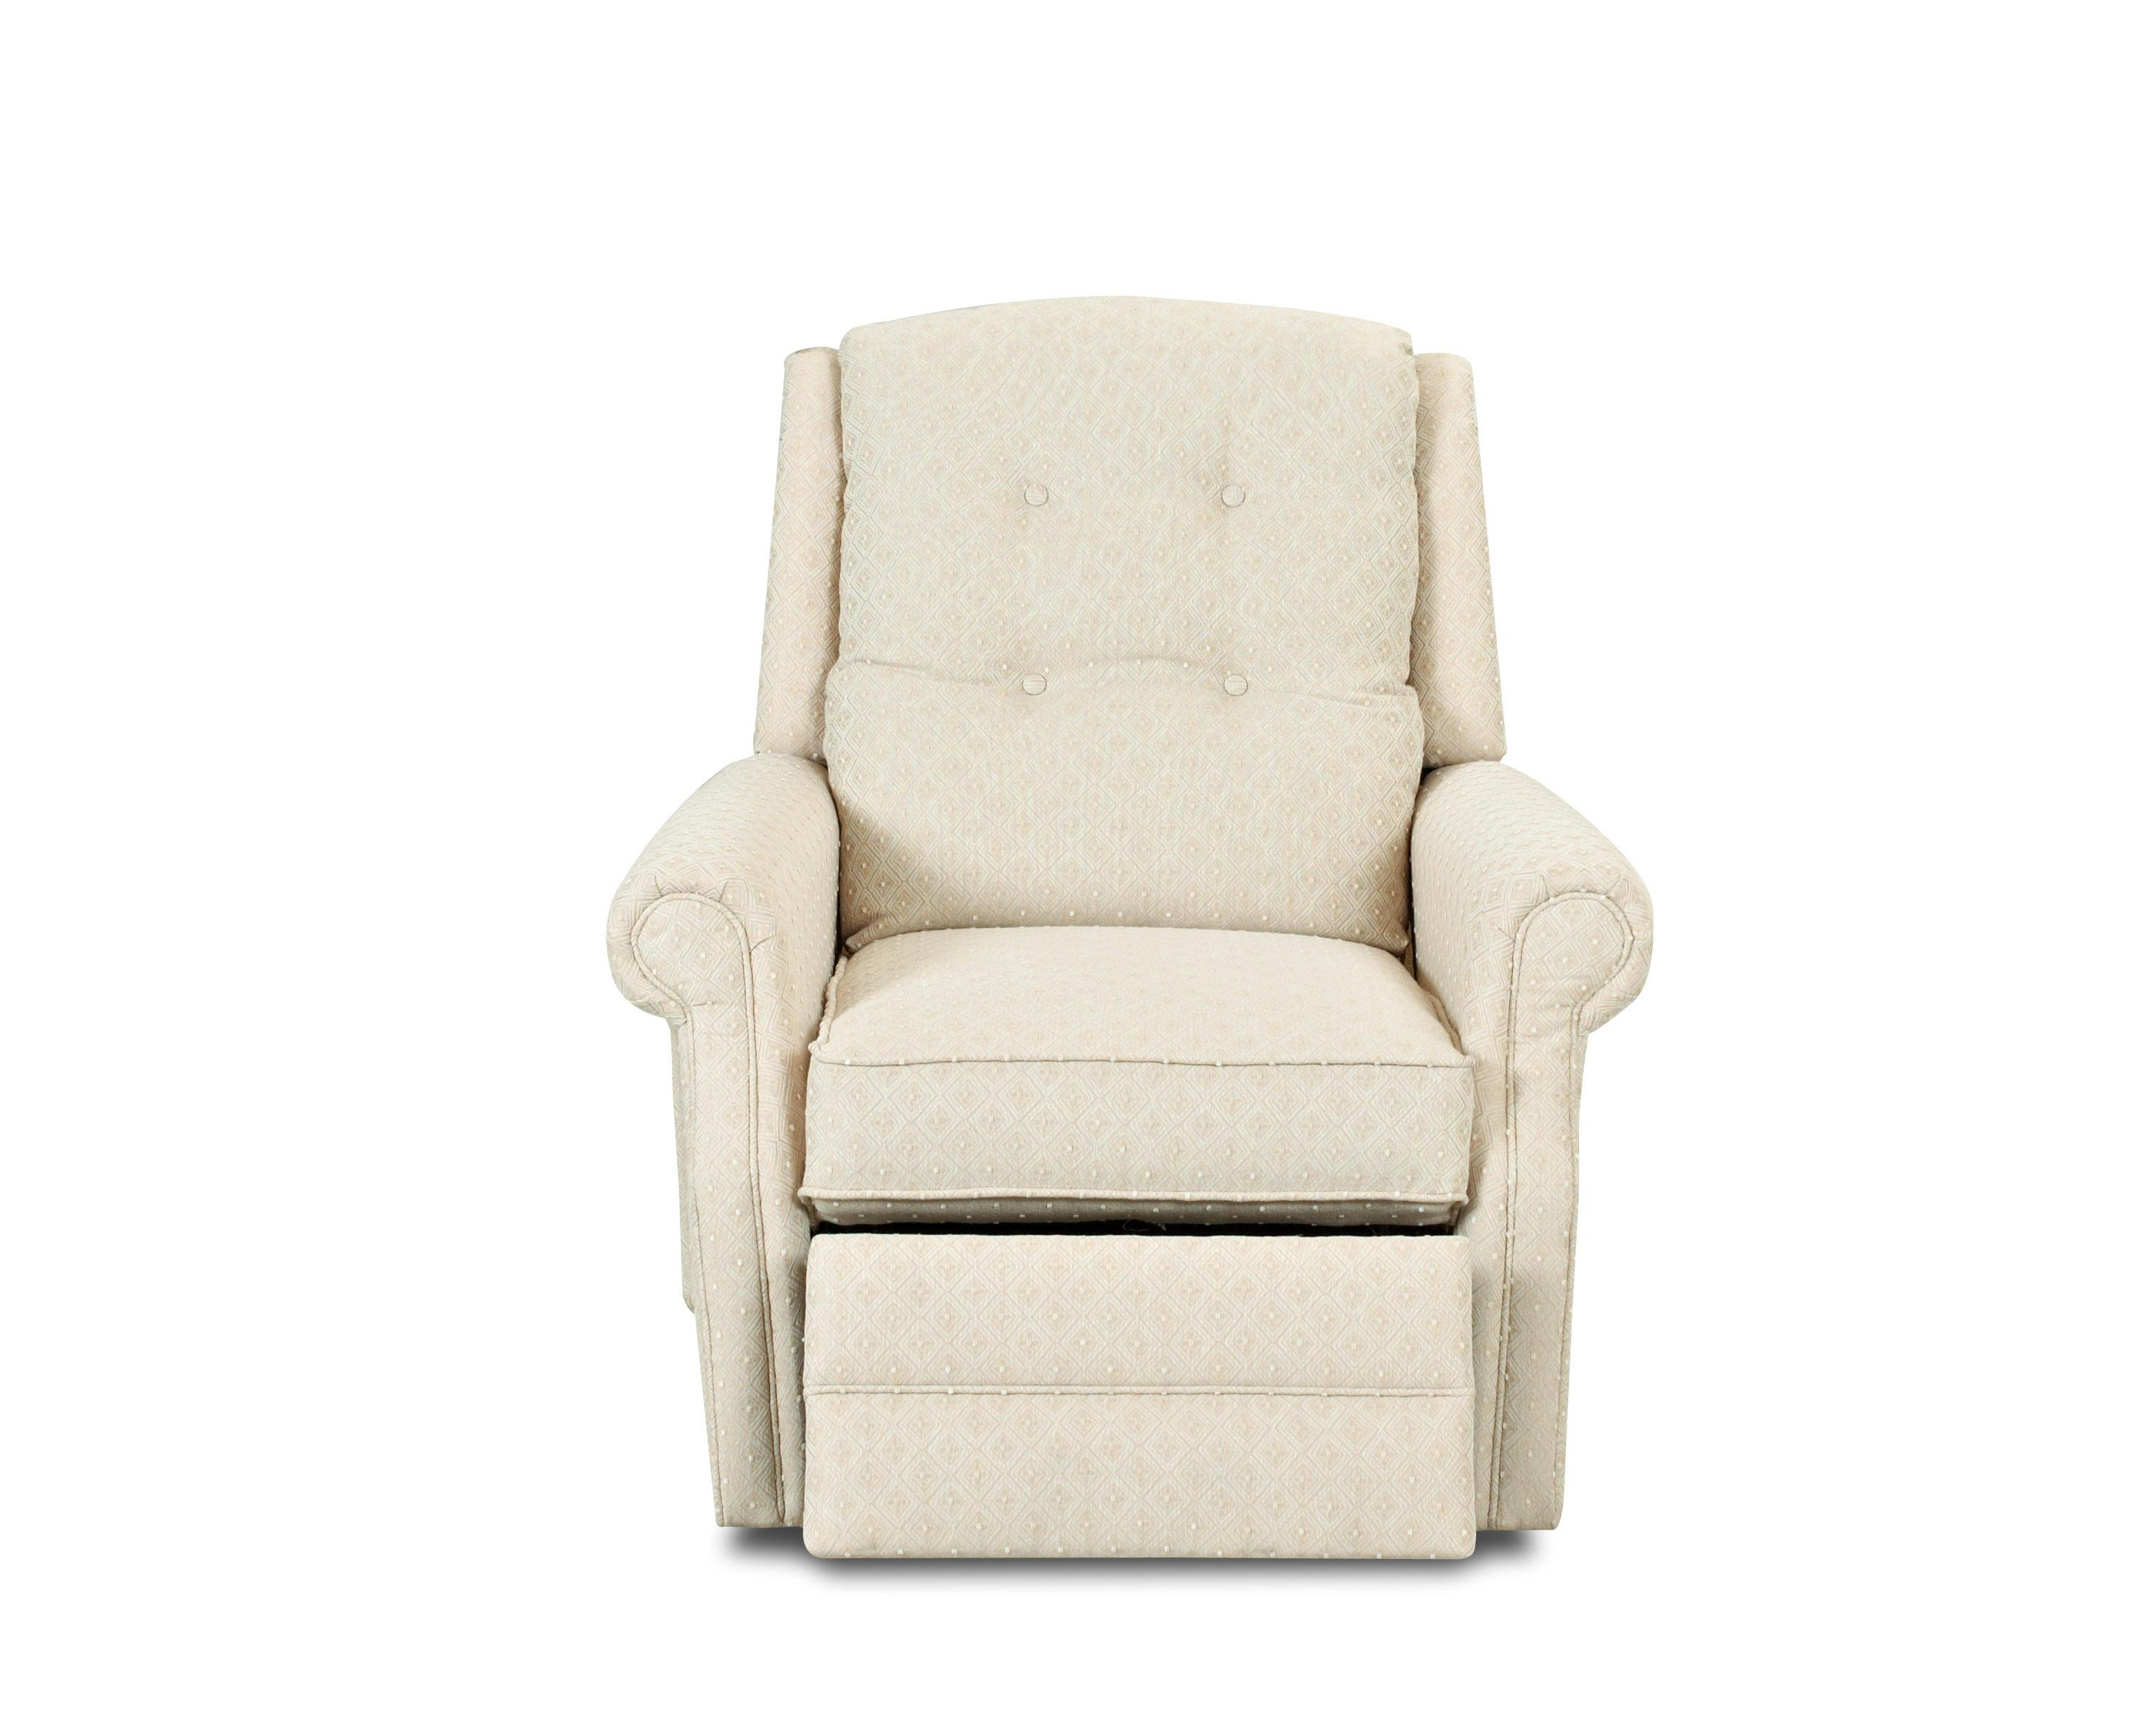 Wonderful image of Transitional Manual Swivel Rocking Reclining Chair with Button Tufting  with #816F4A color and 3000x2400 pixels